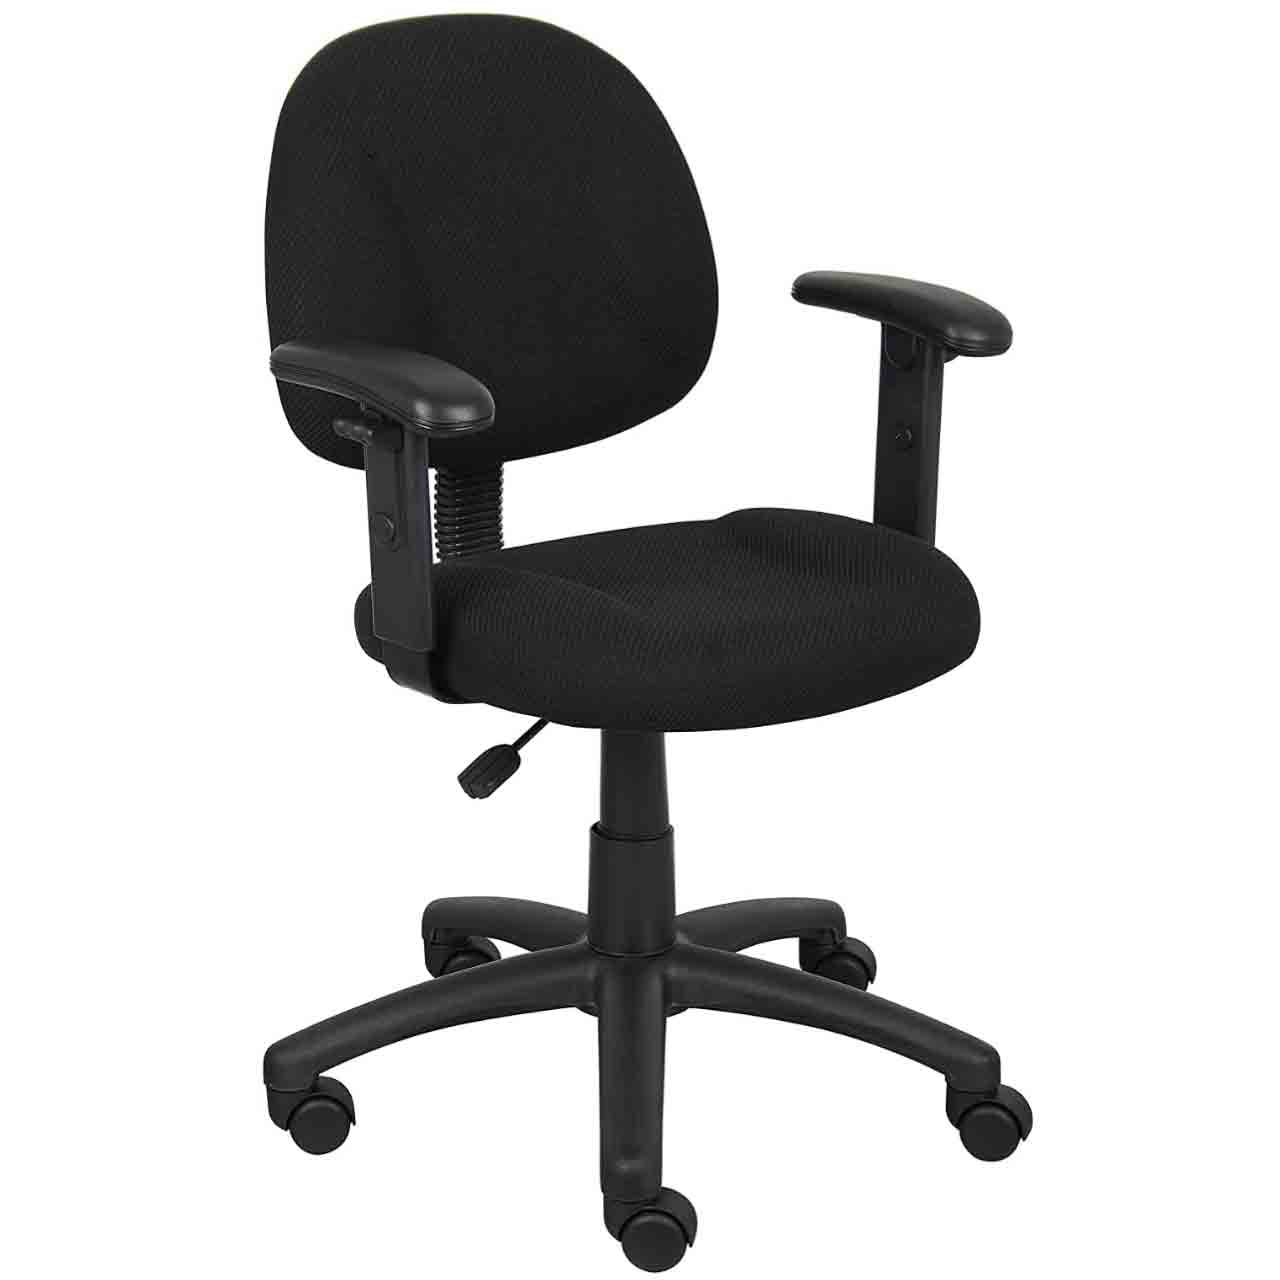 3 Best Office Chair For Short Person 2021 SeCoBuy Boss Fabric Deluxe Task Chair